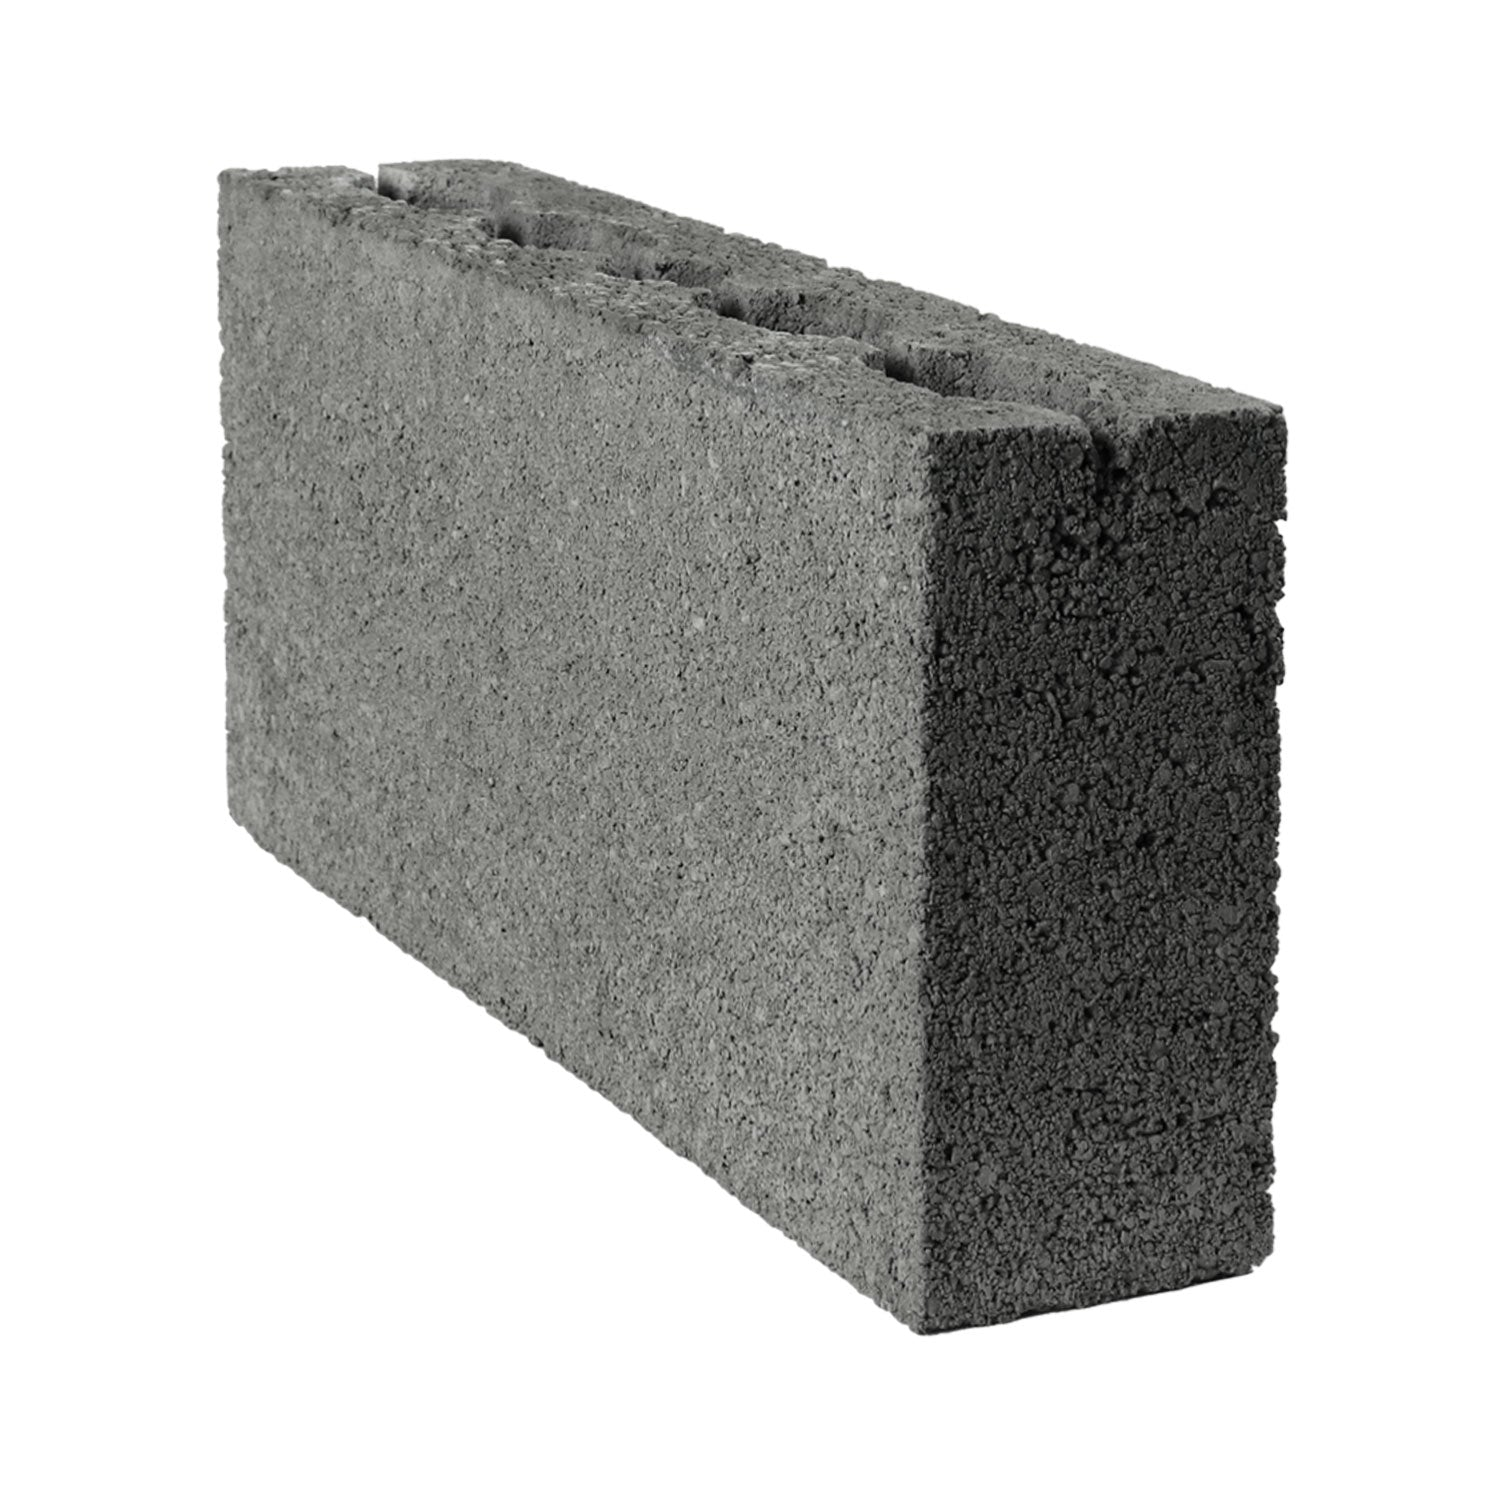 Concrete Cellular Block 100mm